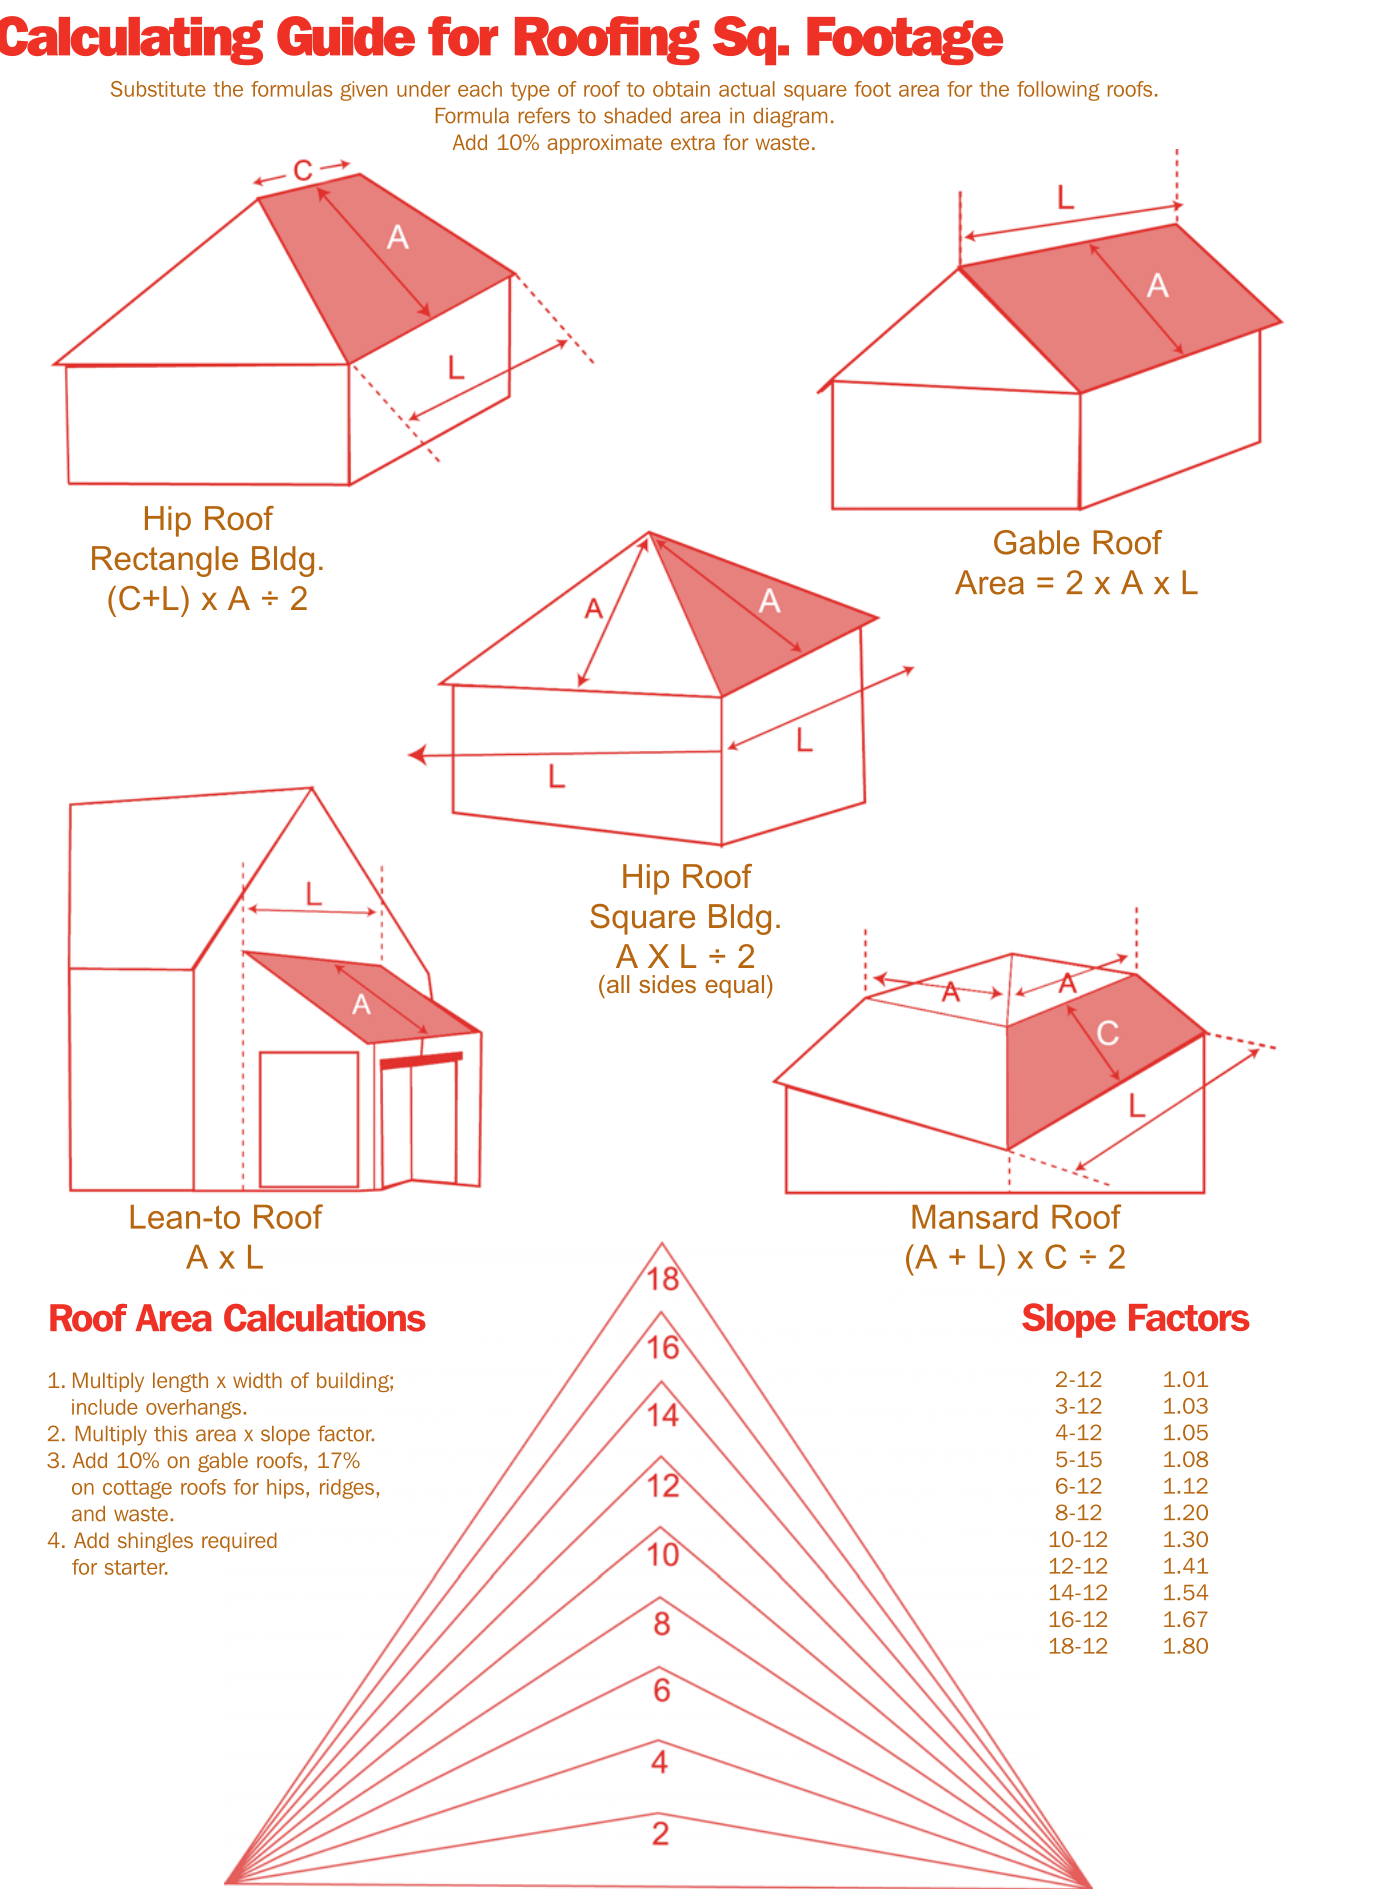 How To Calculate The Number Of Shingles For A Roof In 2020 Roofing Square Roofing Estimate Roofing Calculator